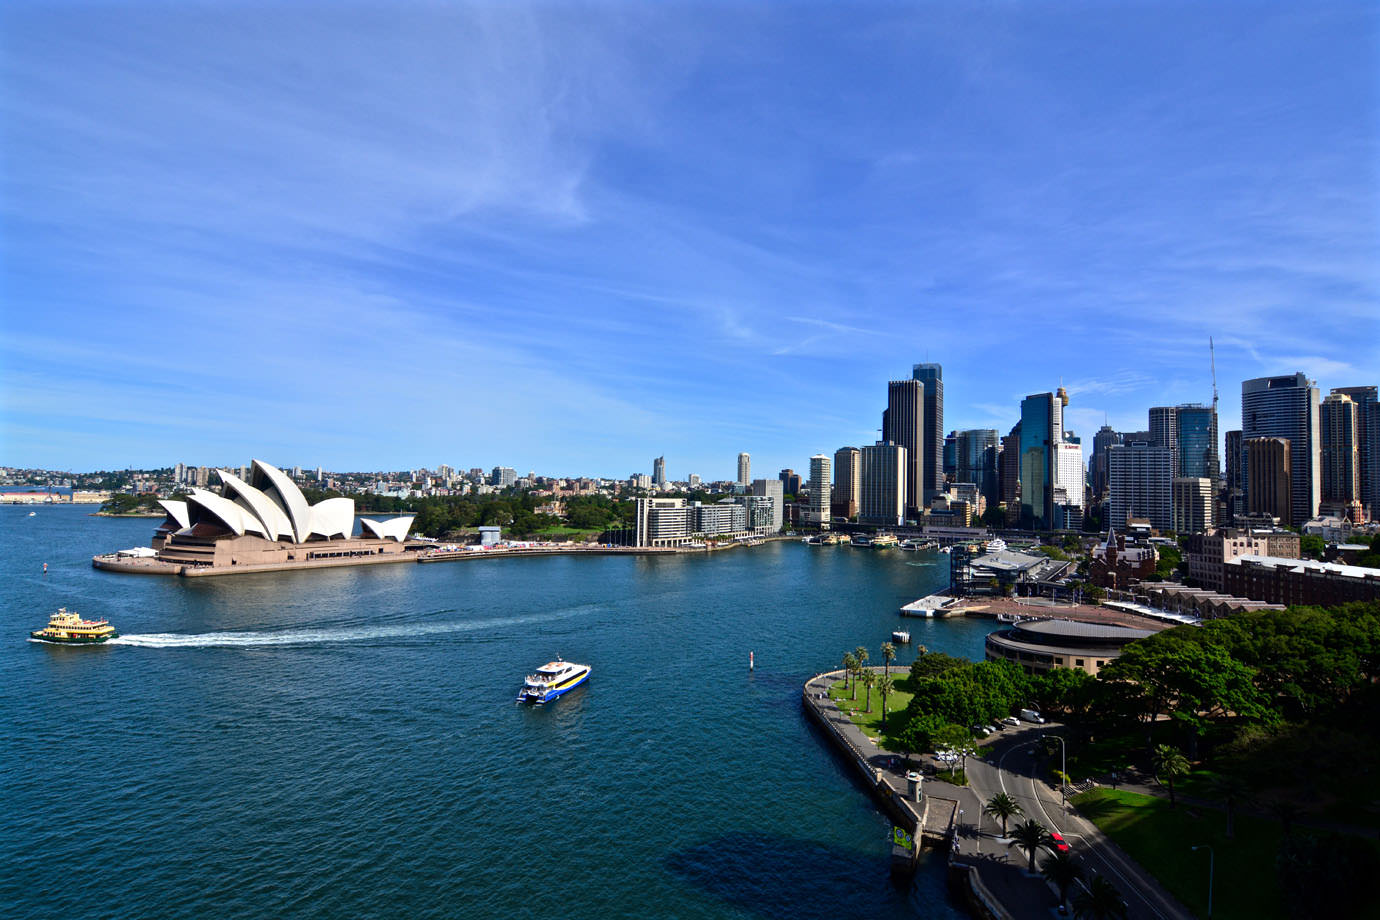 Skyline from Harbour Bridge